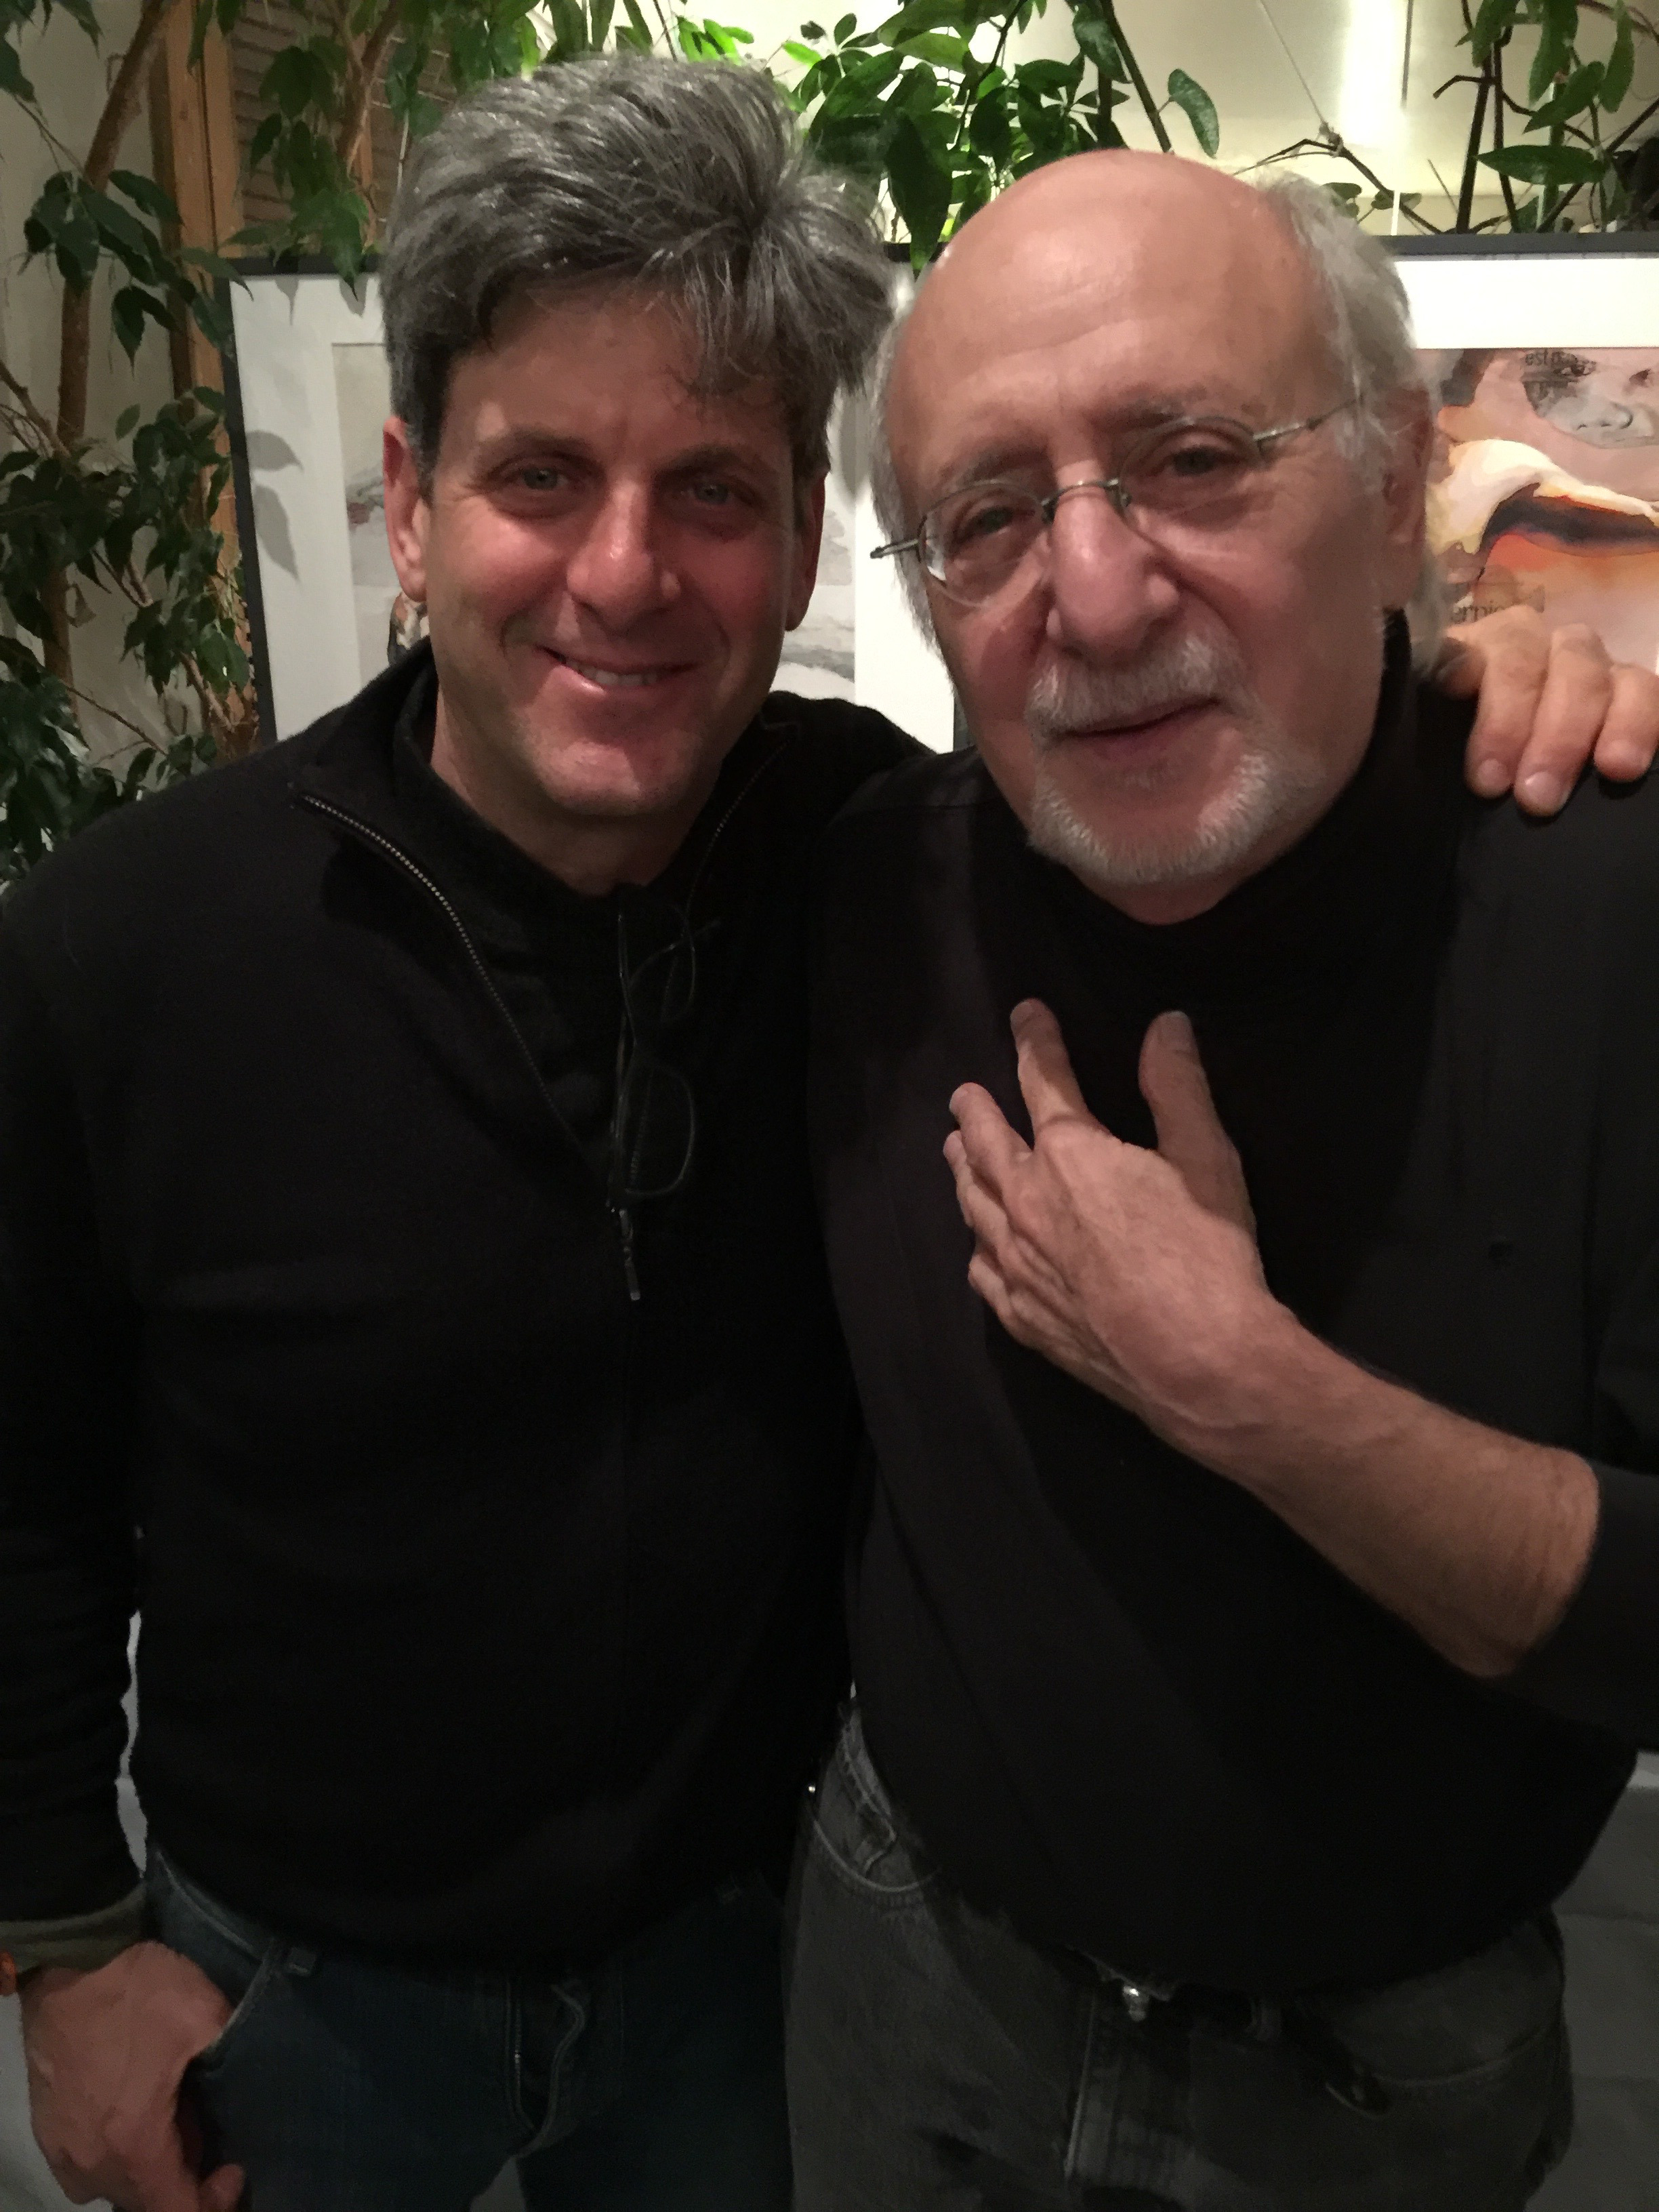 Scott Kling and Peter Yarrow